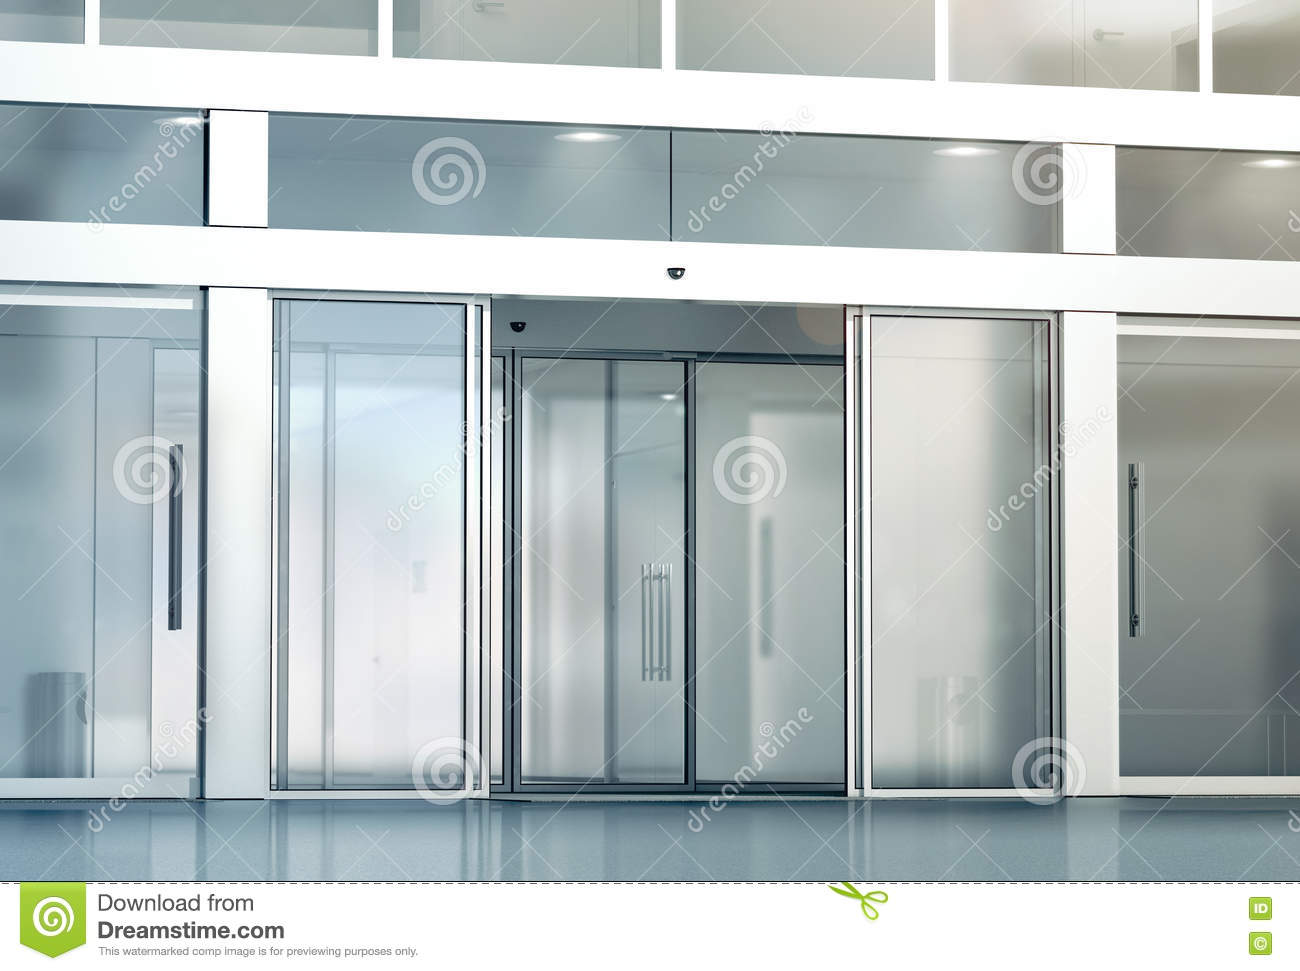 Blank Sliding Glass Doors Entrance Mockup Stock Image Image Of